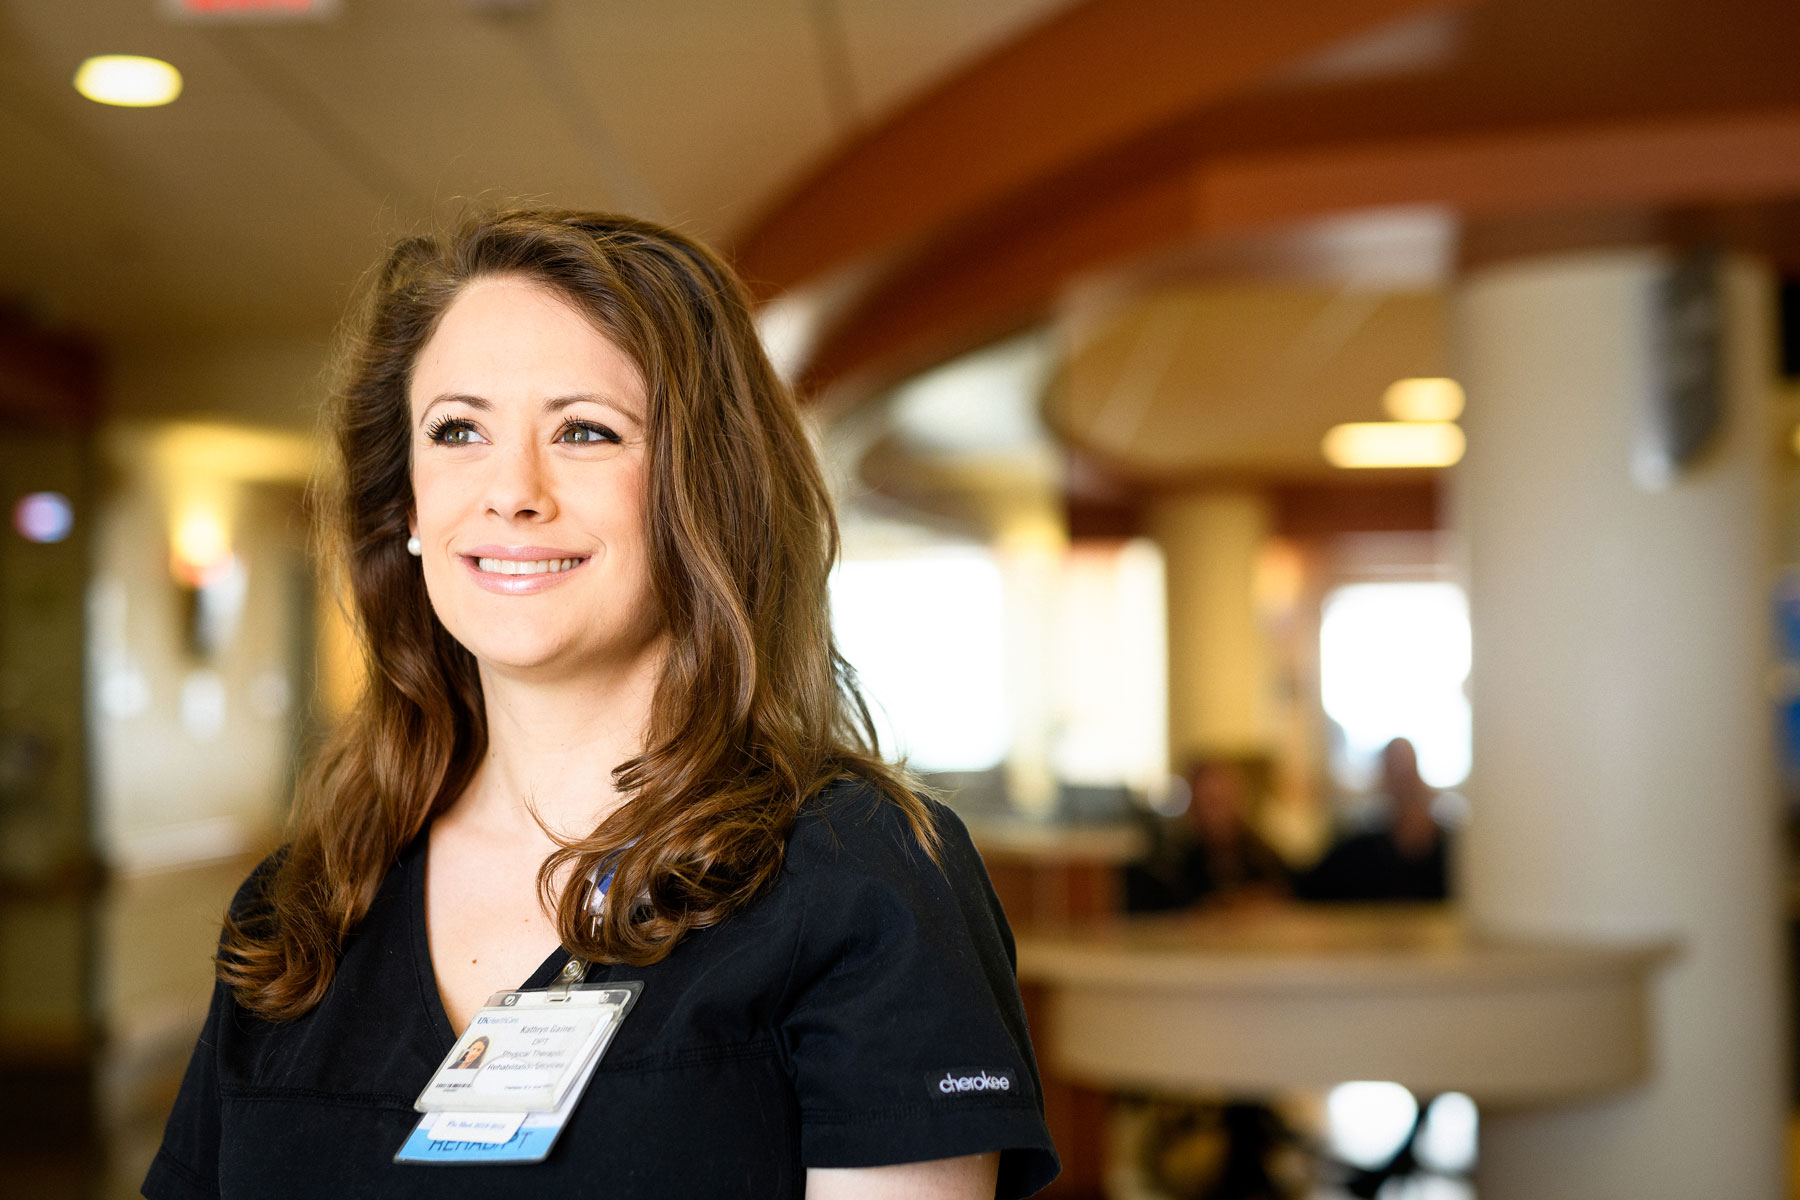 Physical therapist Kathryn Gaines smiles in the hospital lobby.